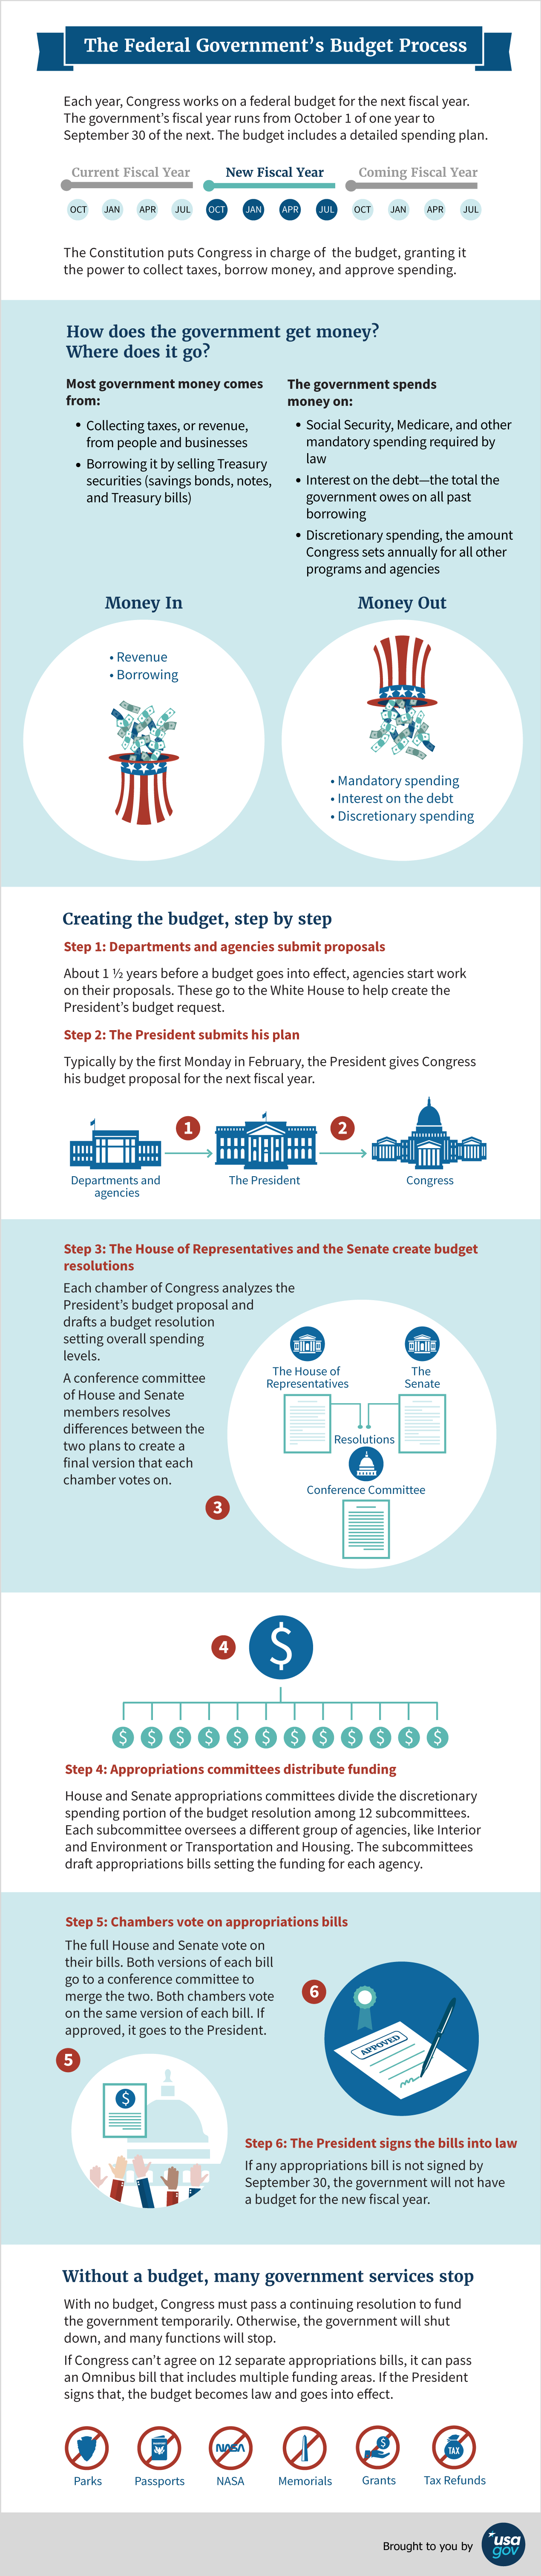 Infographic explaining the steps involved in creating an annual budget for the federal government.